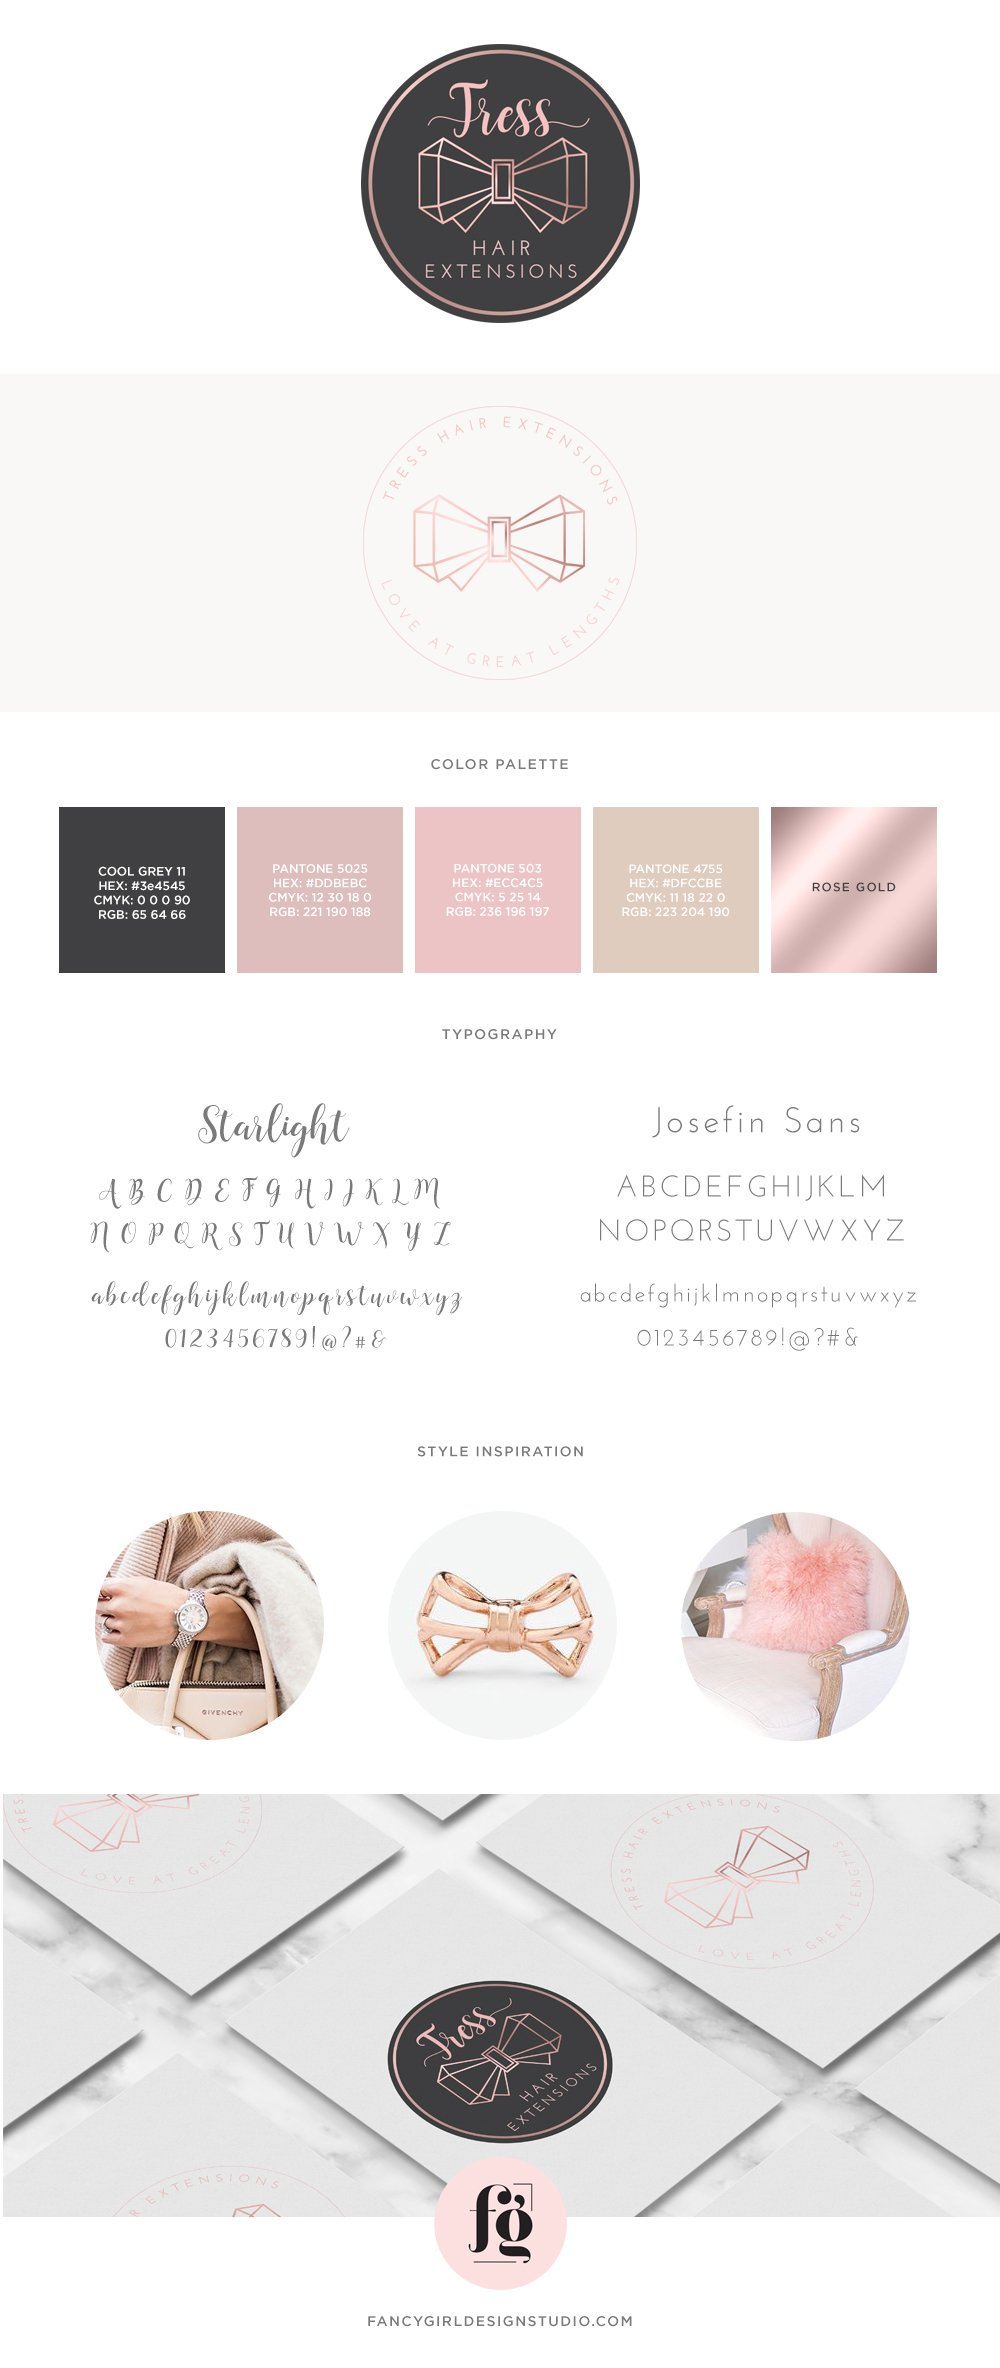 brand board for tress hair extensions by fancy girl design studio